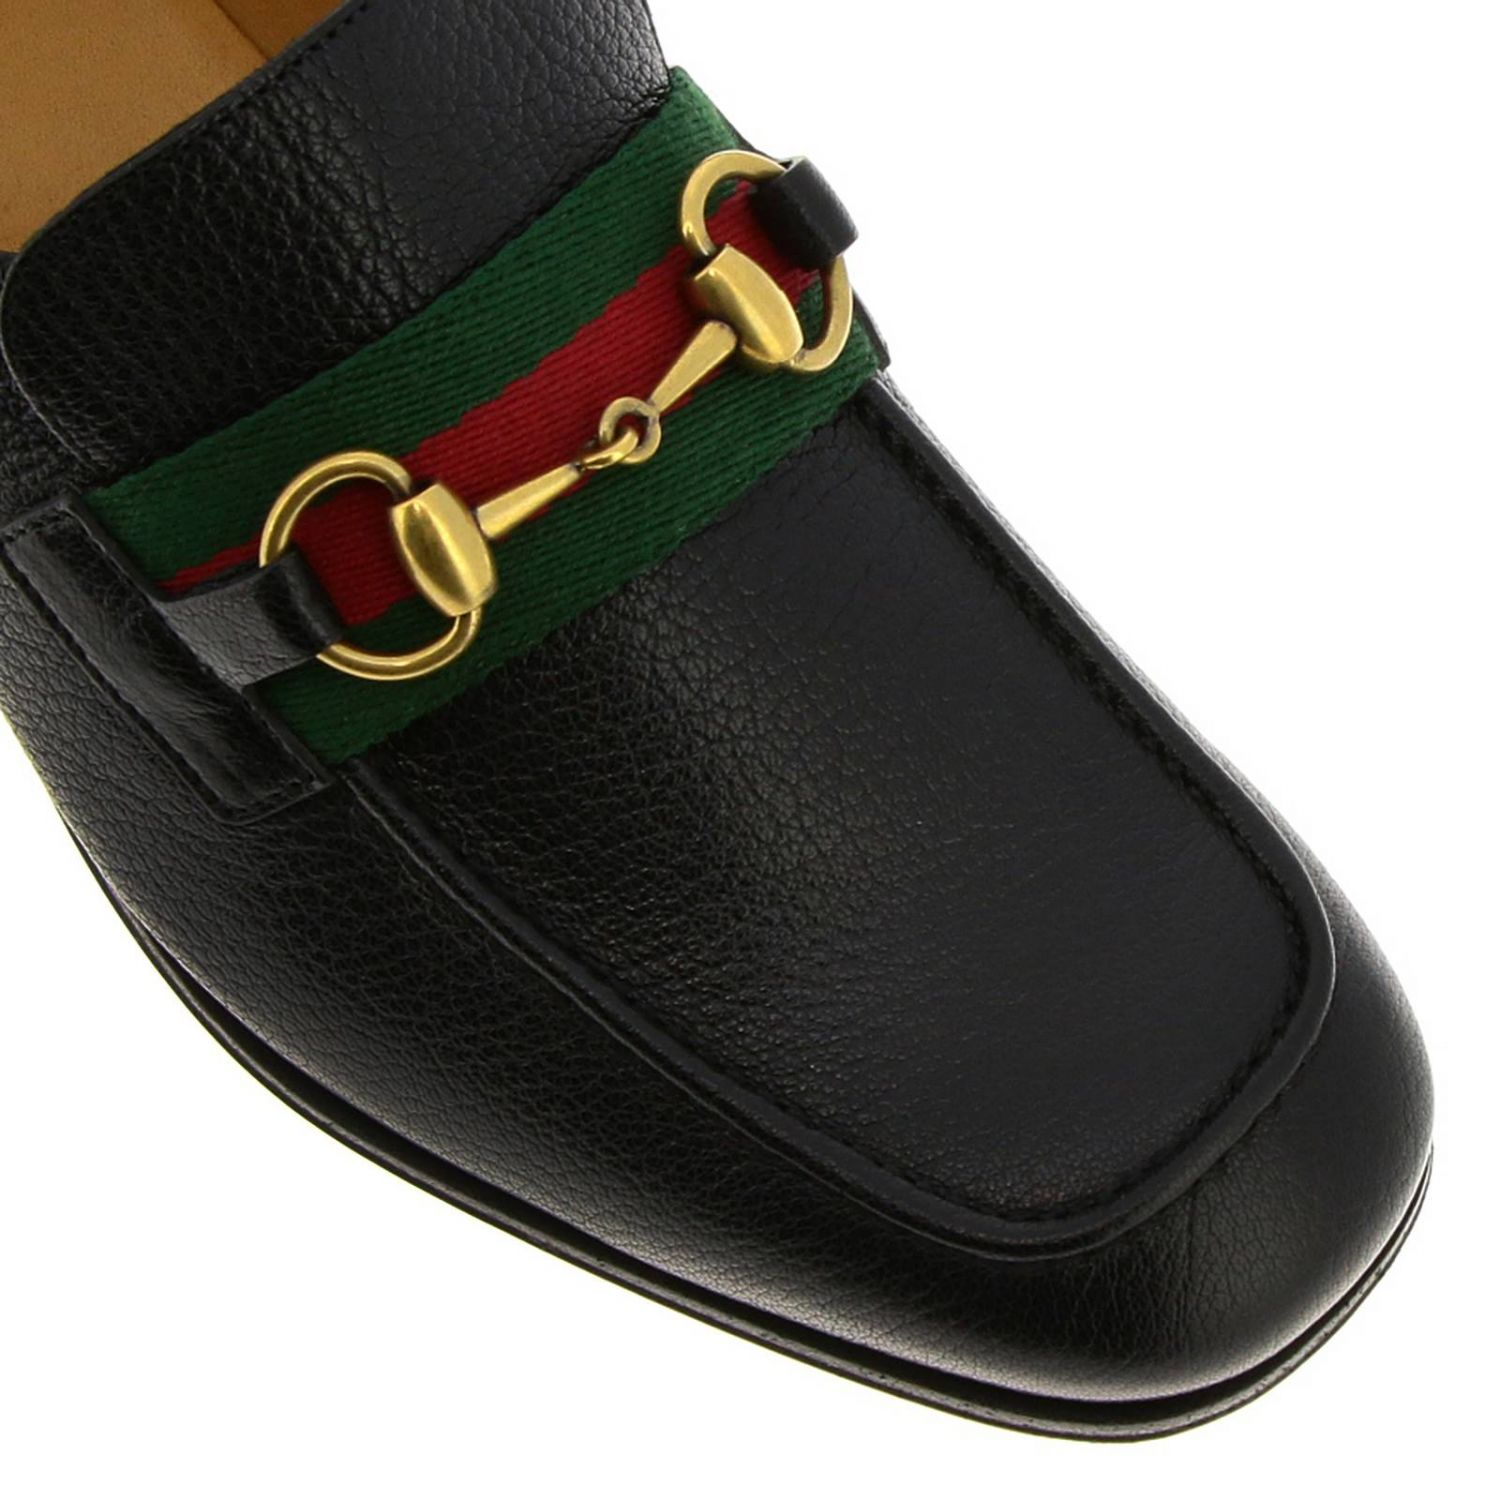 Mocassino Bonny in vera pelle soft con morsetto metallico e fascia Web Gucci nero 3